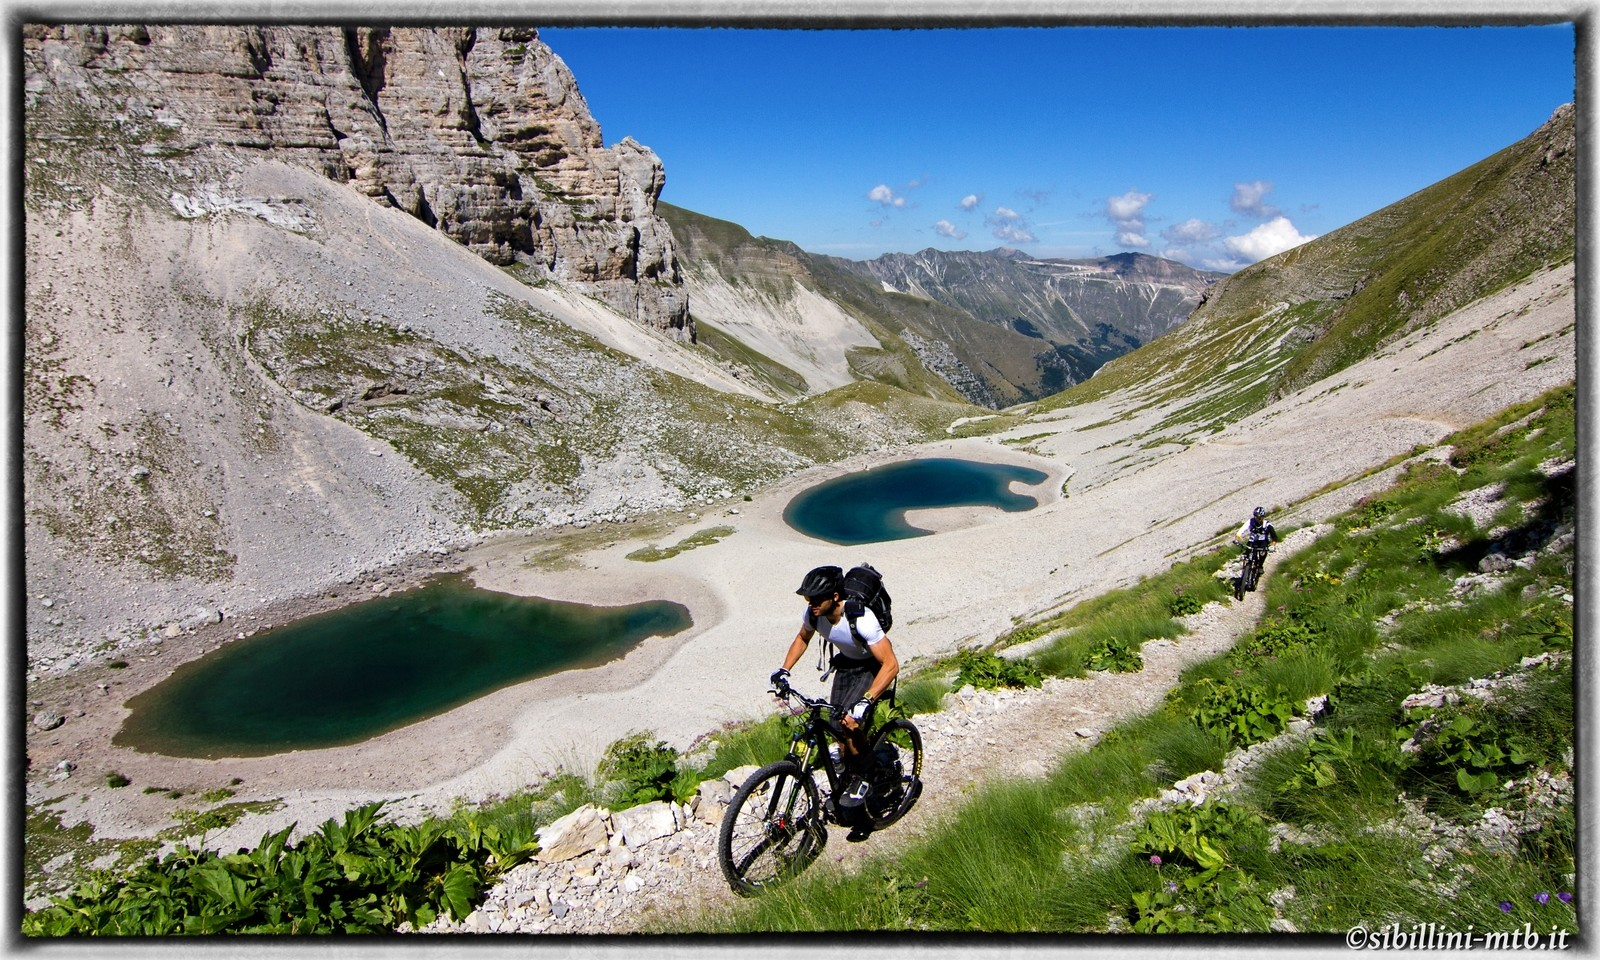 Laghi di Pilato - barbonis - Mountain Biking Pictures - Vital MTB